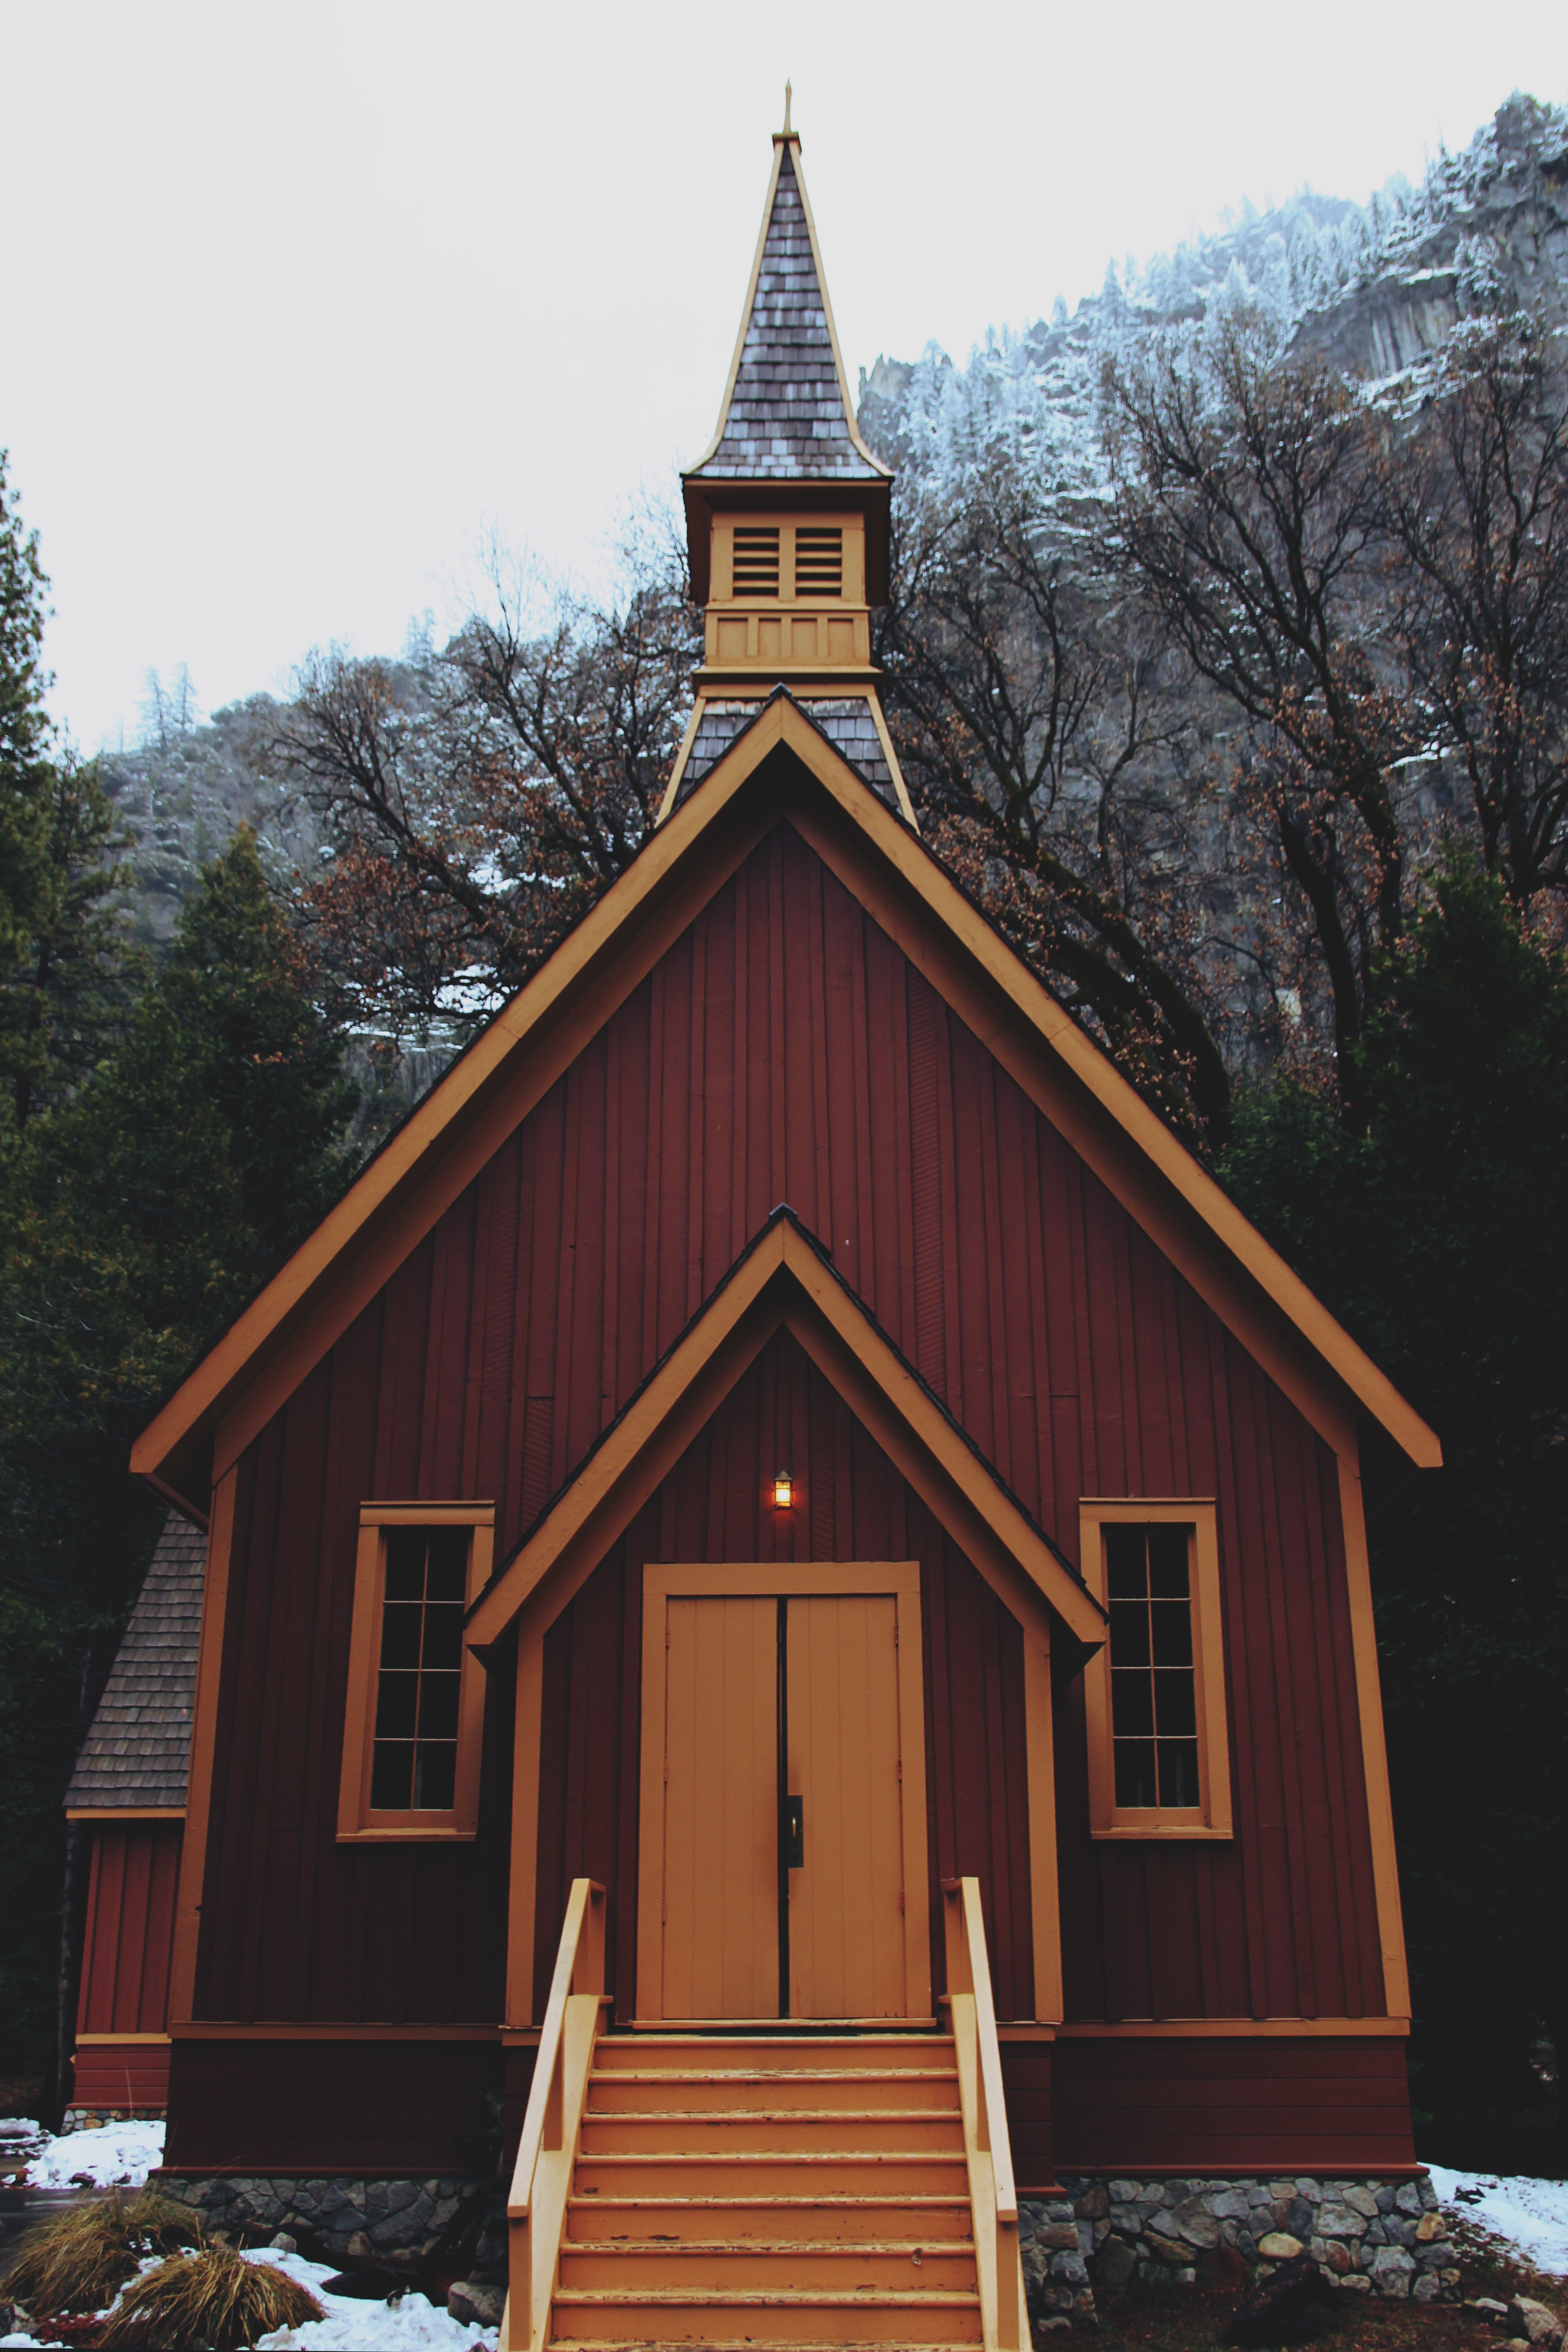 orange and red wooden chapel